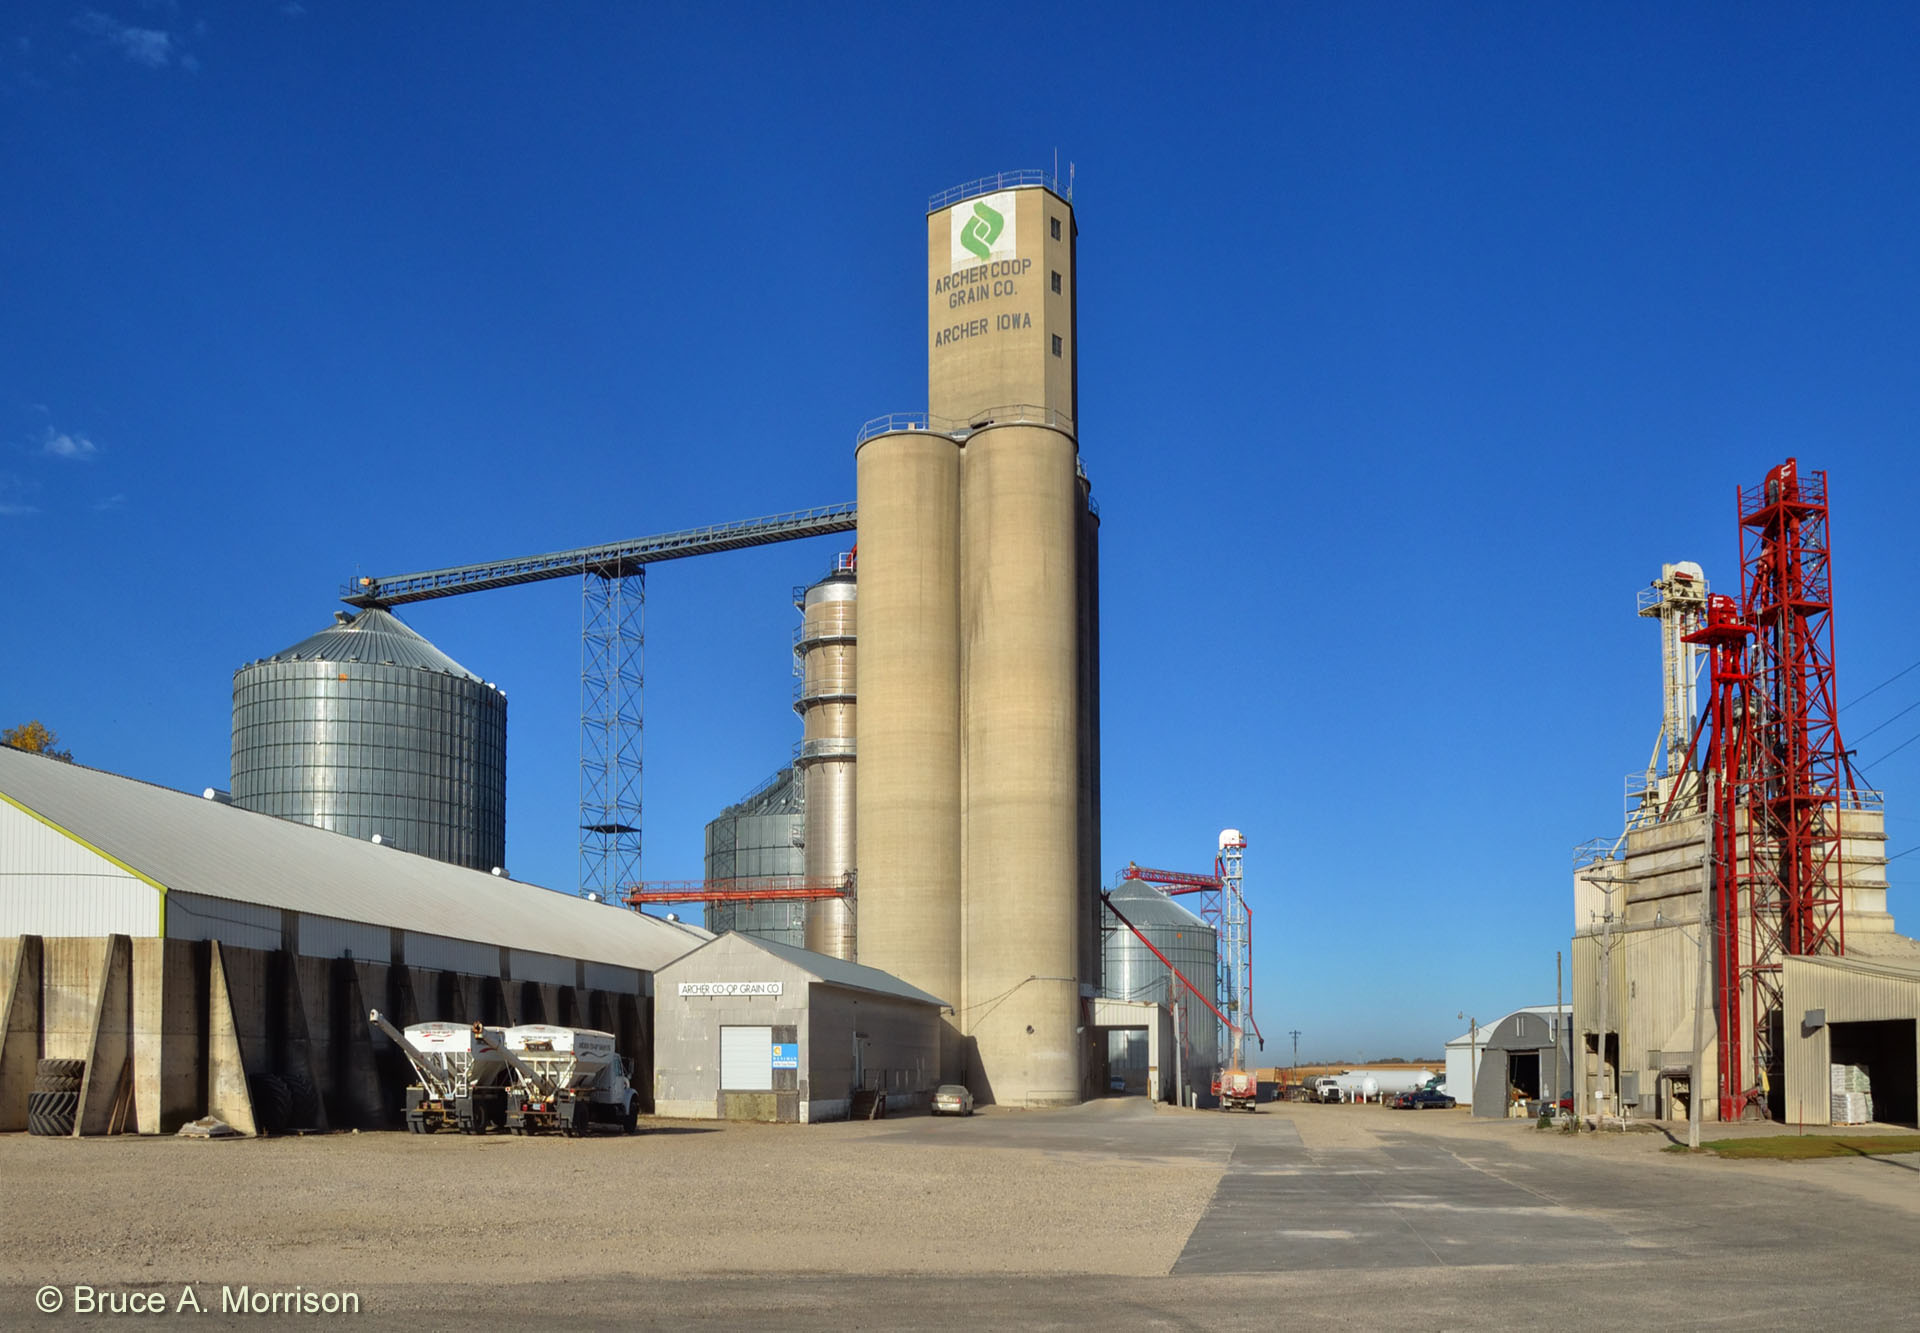 Ag Industry in Archer, Iowa